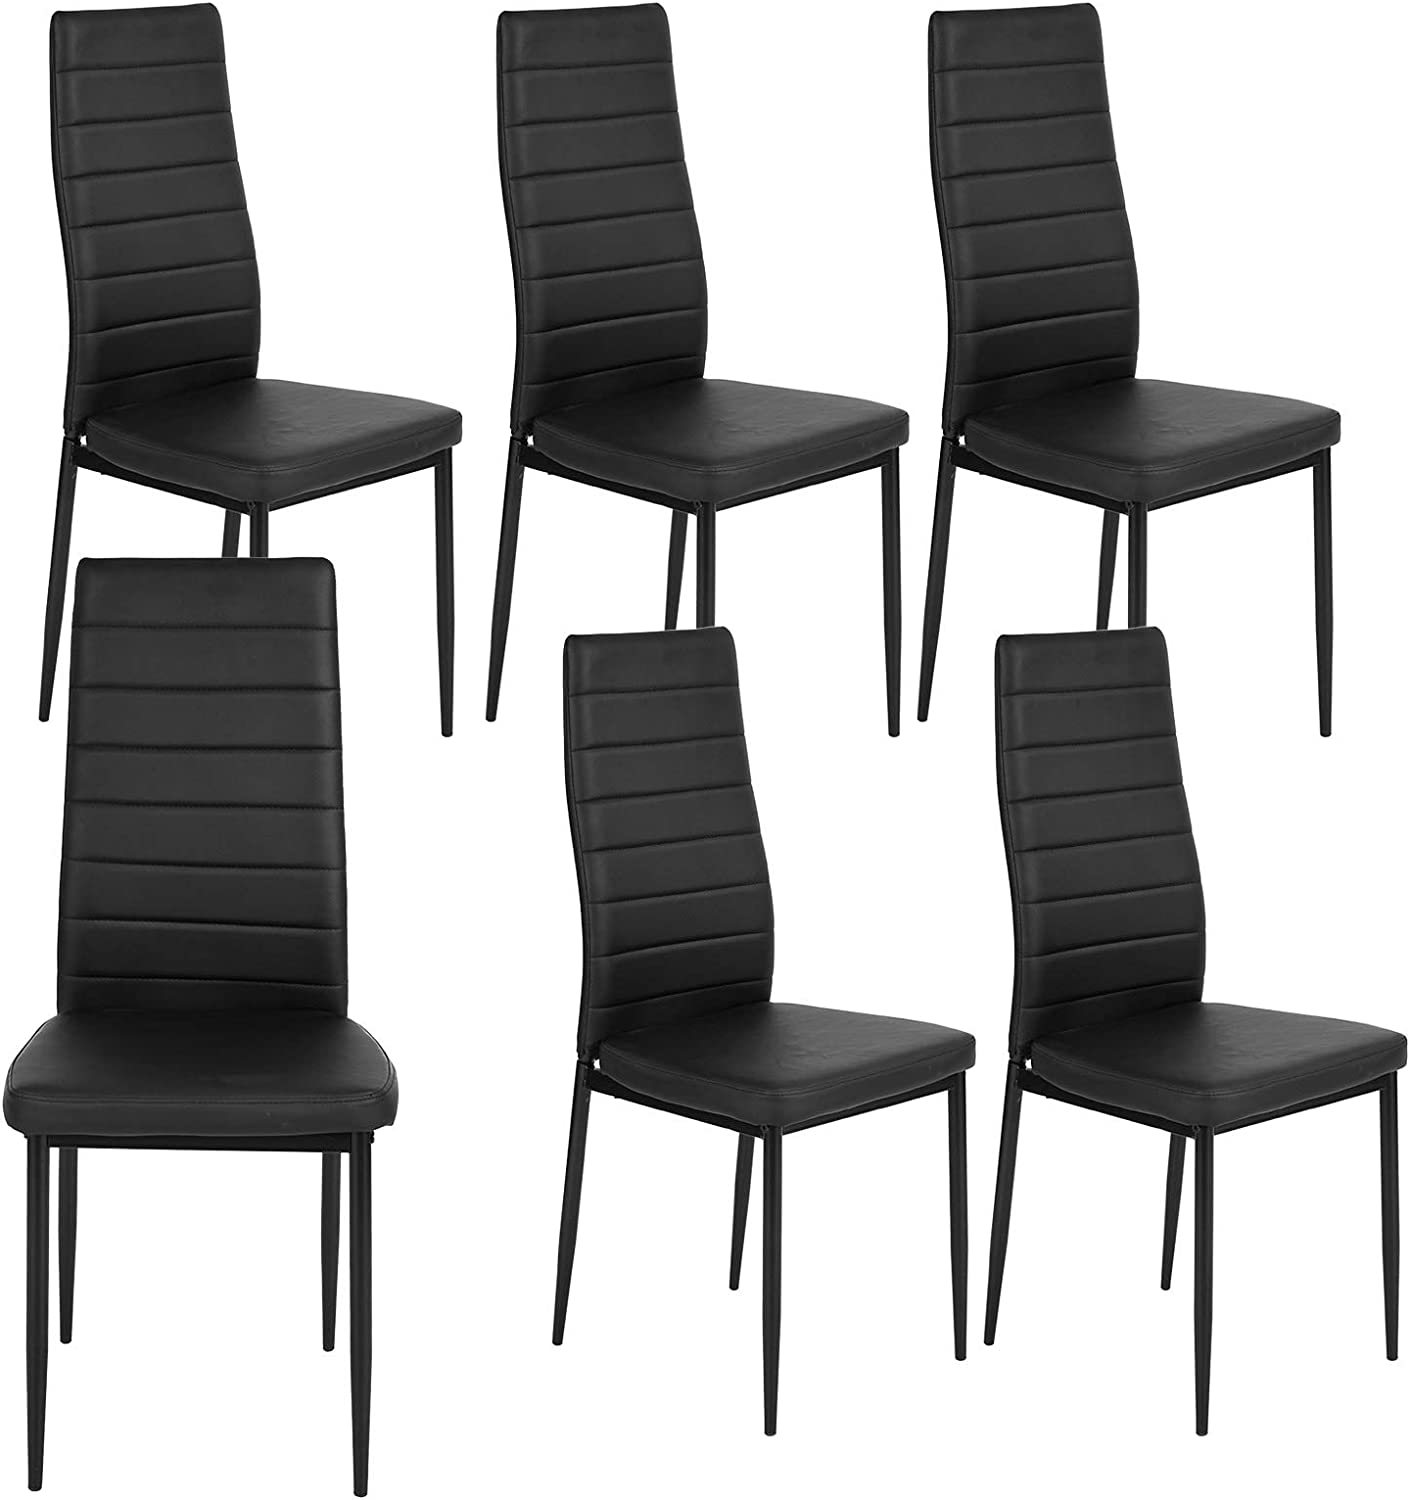 HouseInBox Leather Dining Chairs, Modern PU Side Chair with Metal Feet Back Support, for Dining Room Set of 6 (Black)